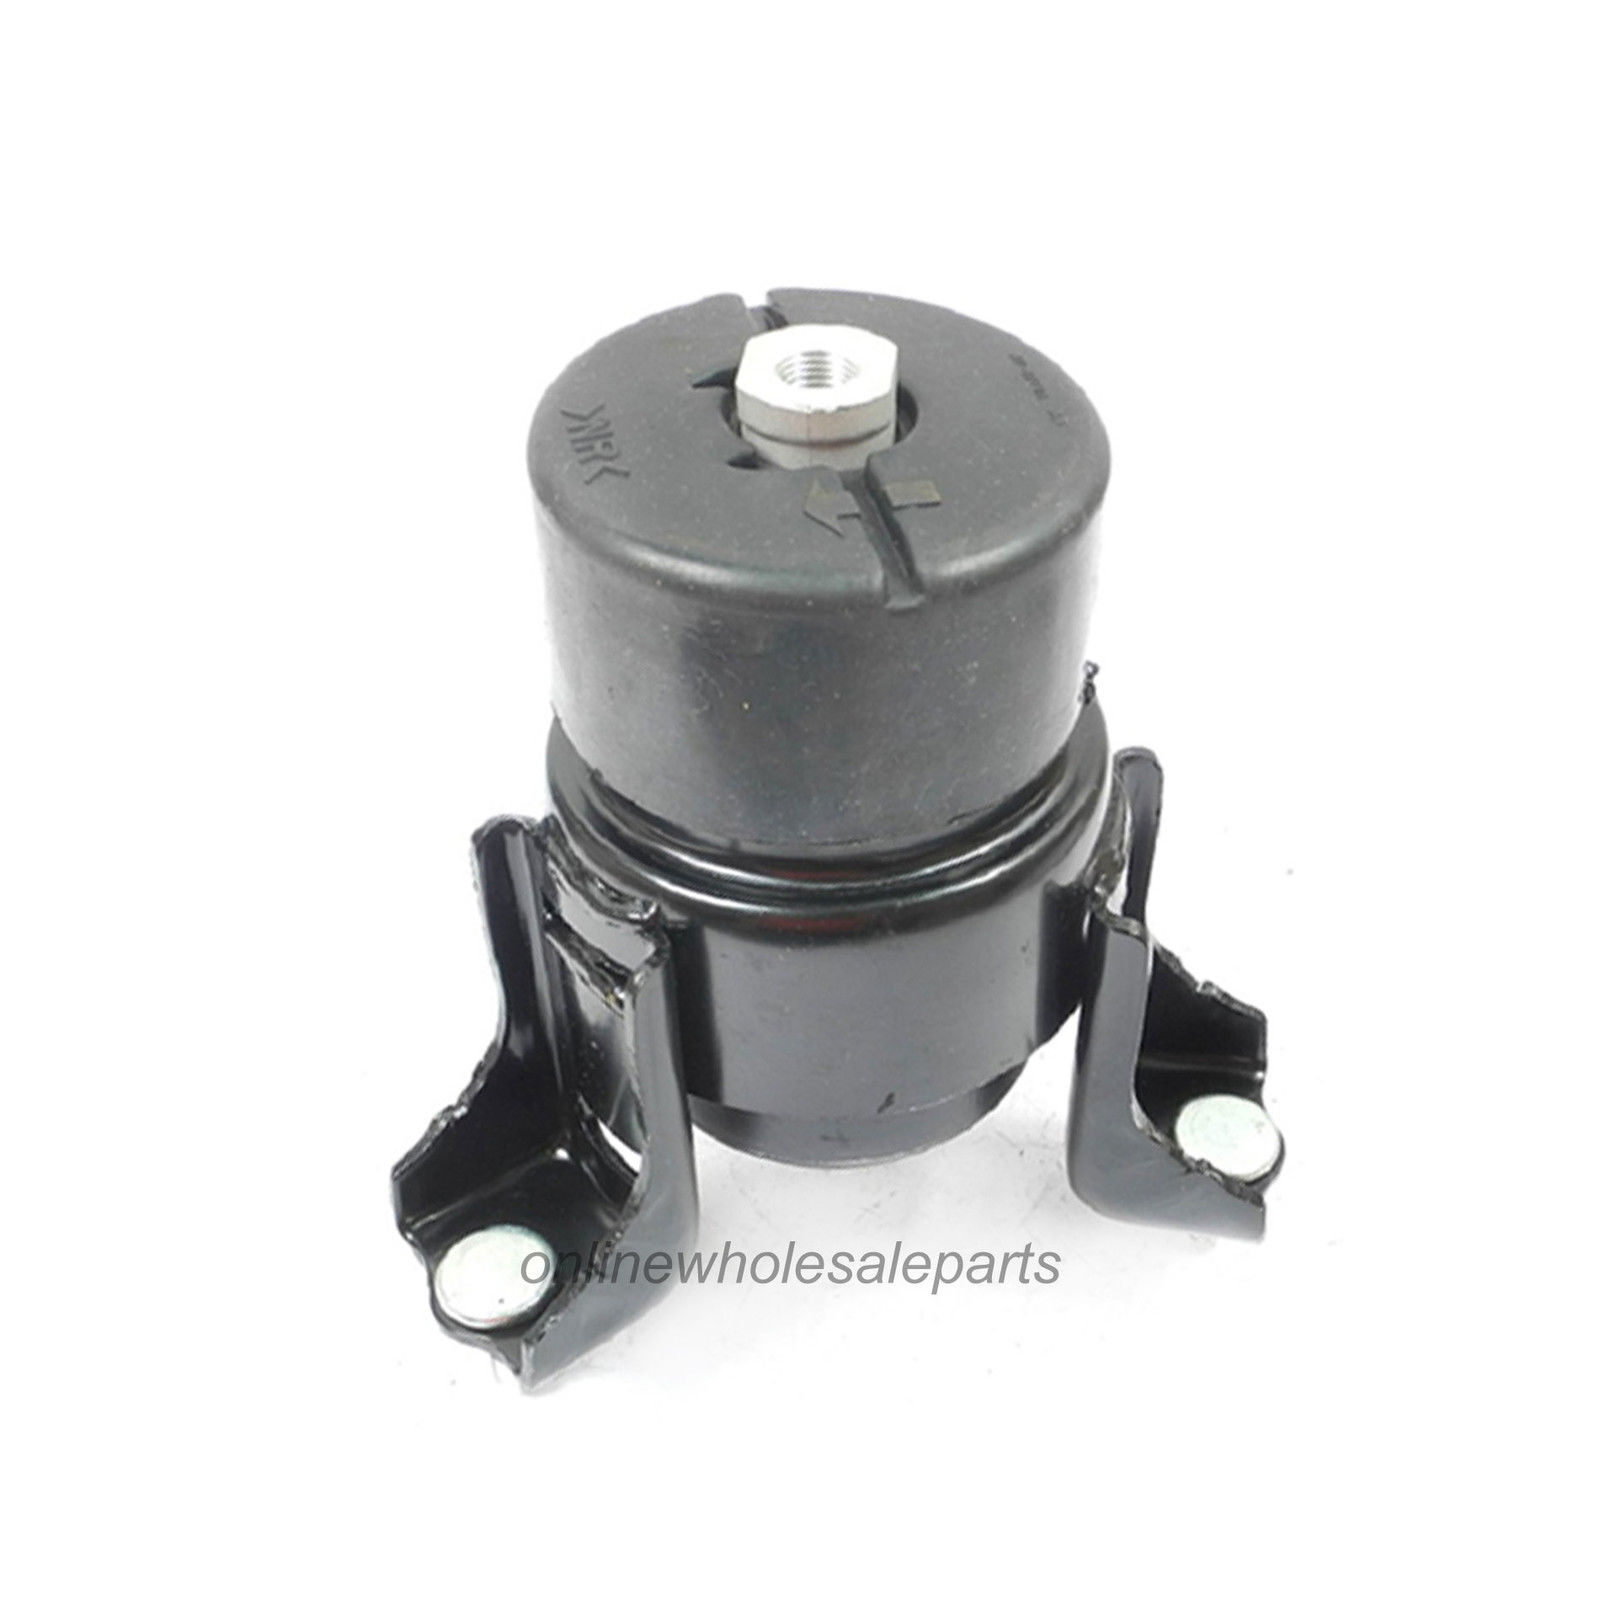 New Engine Motor Mount Hydraulic For Toyota Camry 2.4L 3.0L M454 4211 4203